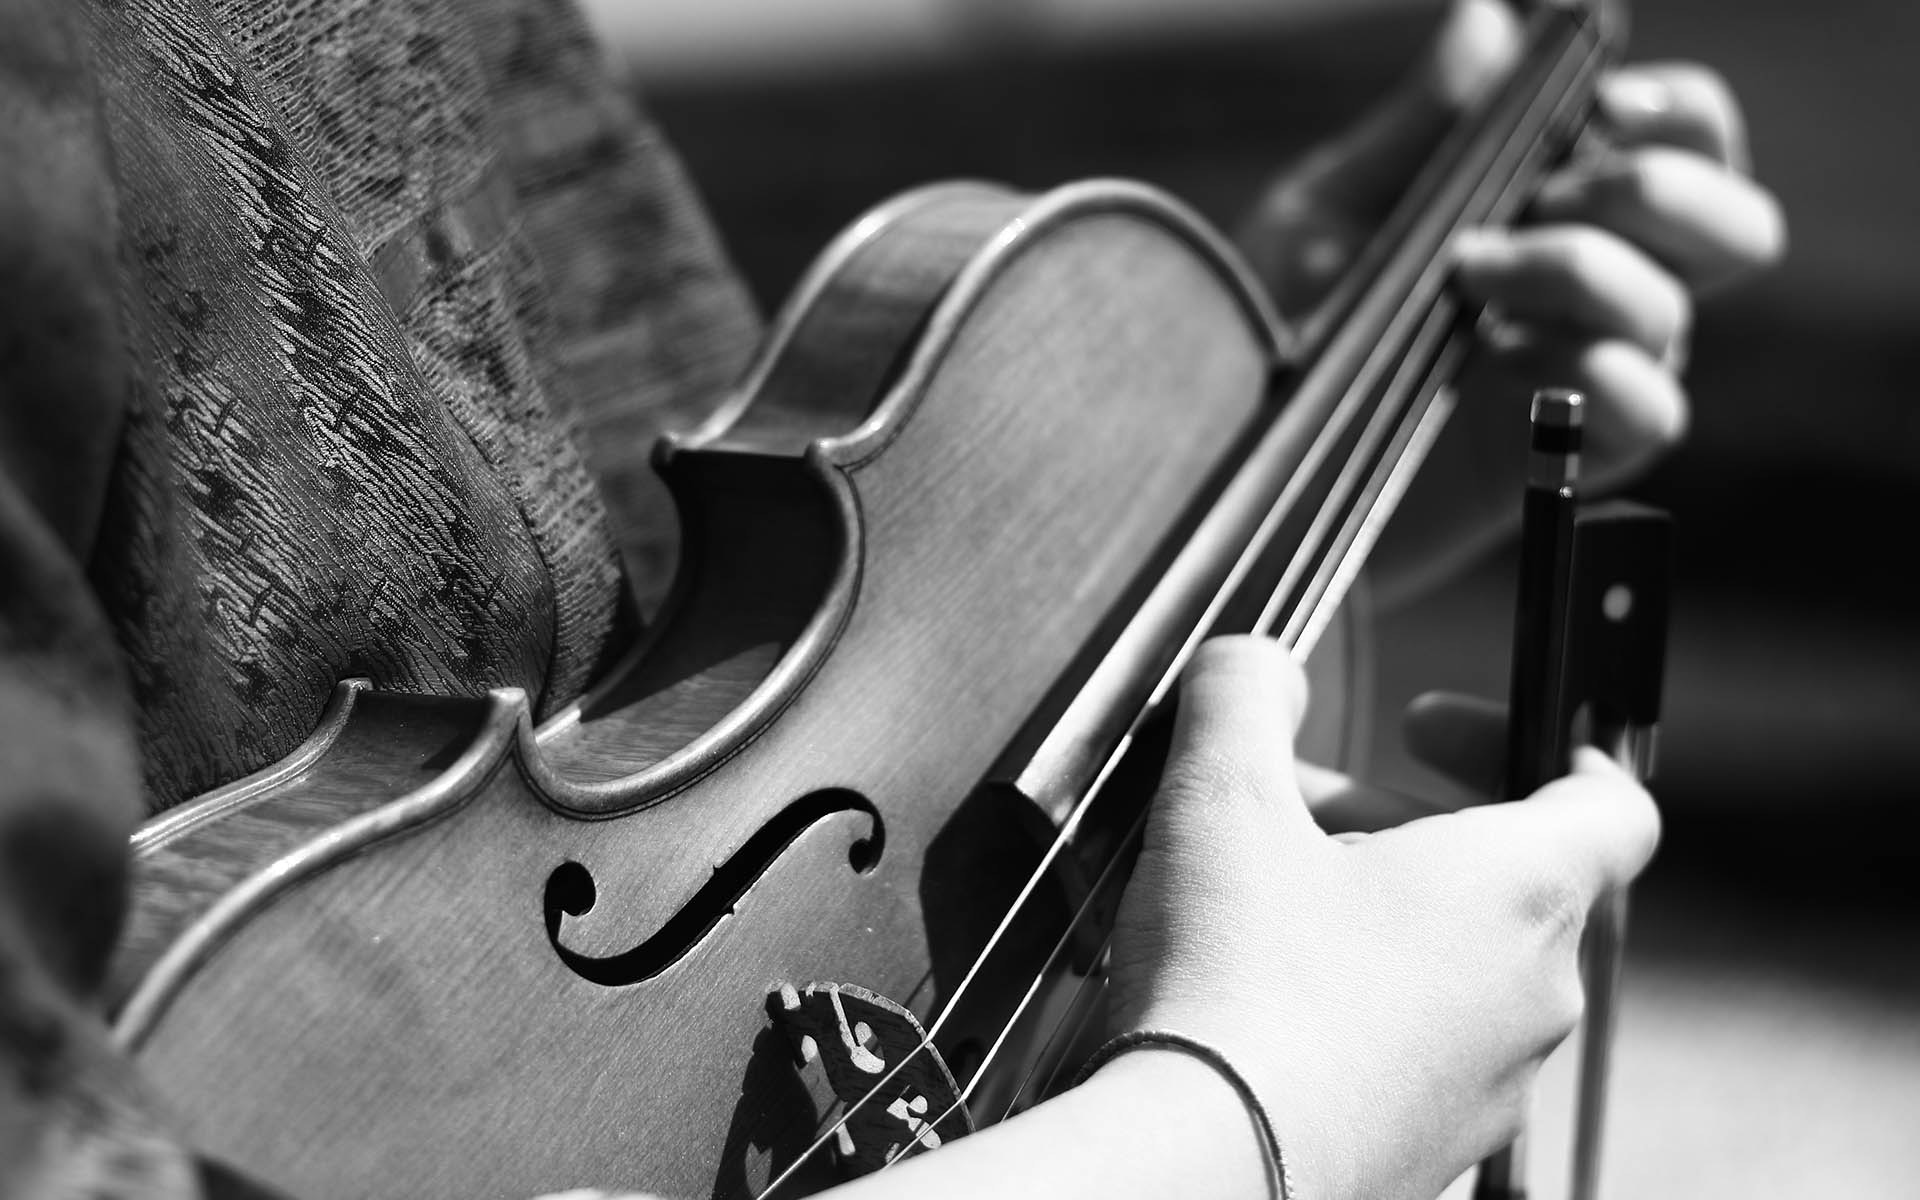 Grayscale Photography Of Person Playing Violin String Instrument Musician